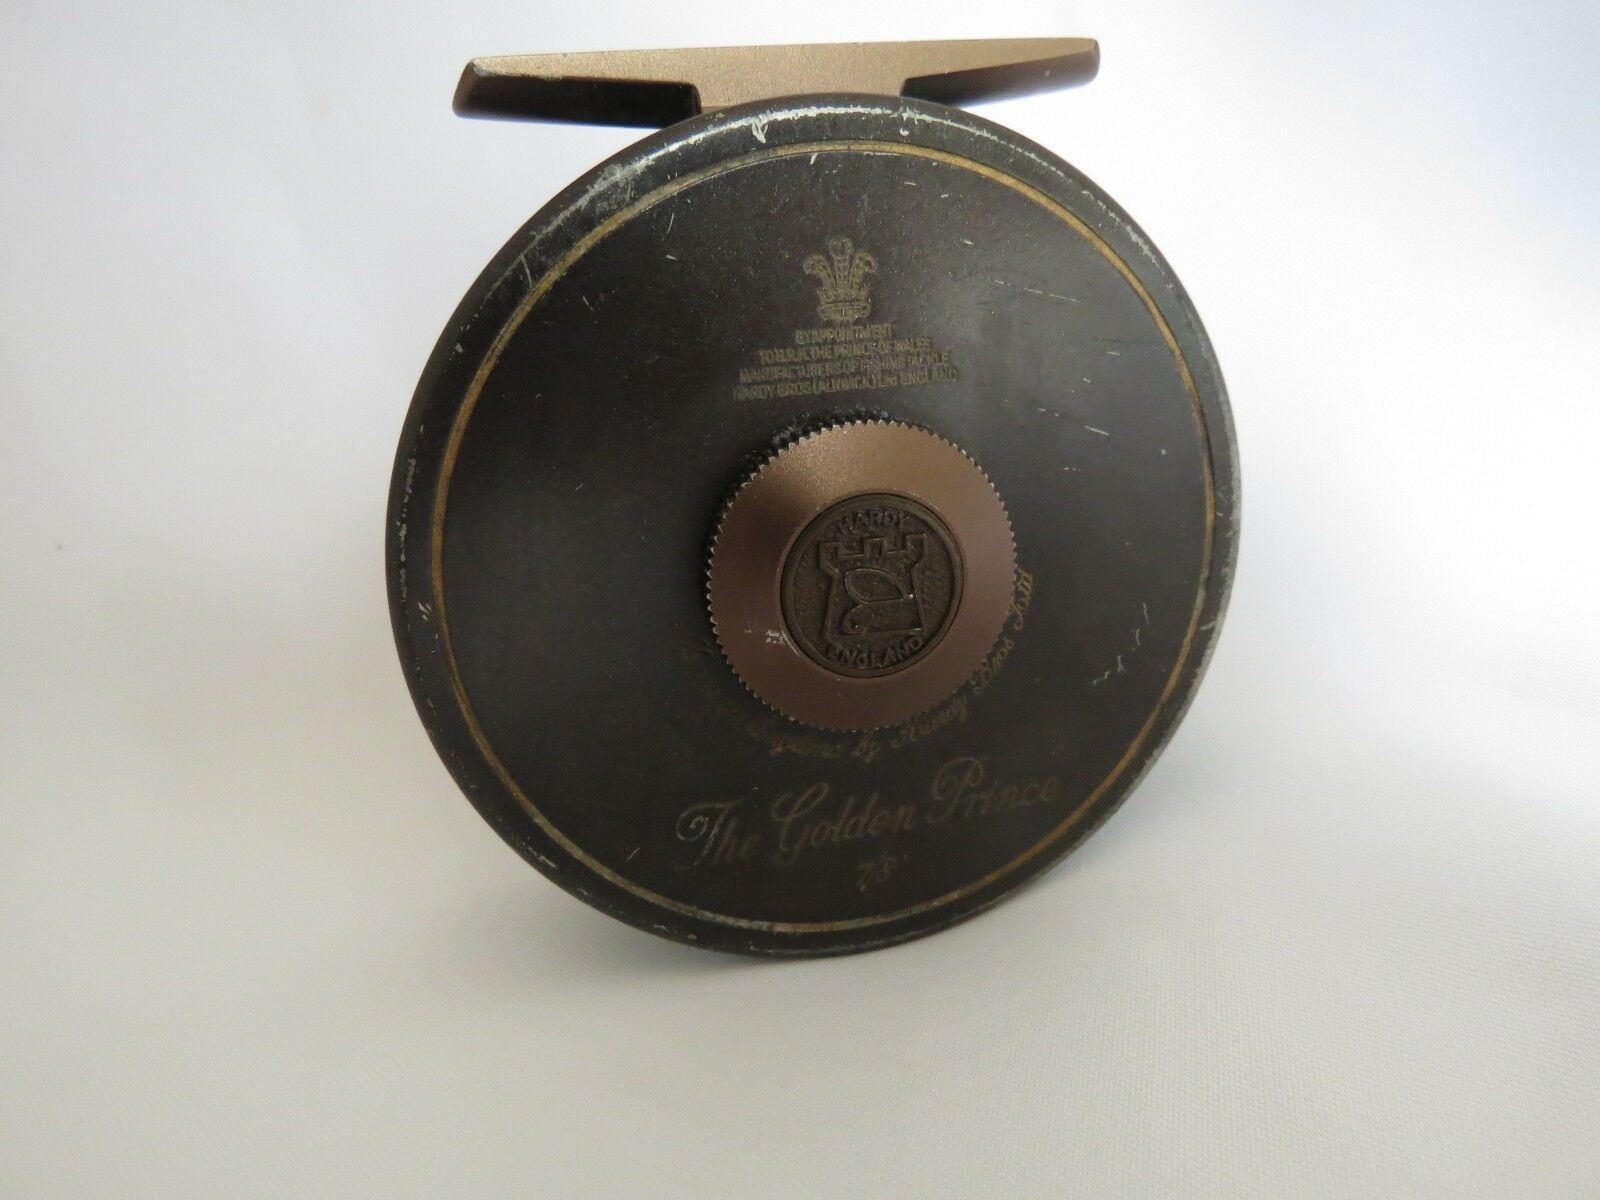 House of HARDY Golden Prince 7/8 Fly Reel made in ENGLAND